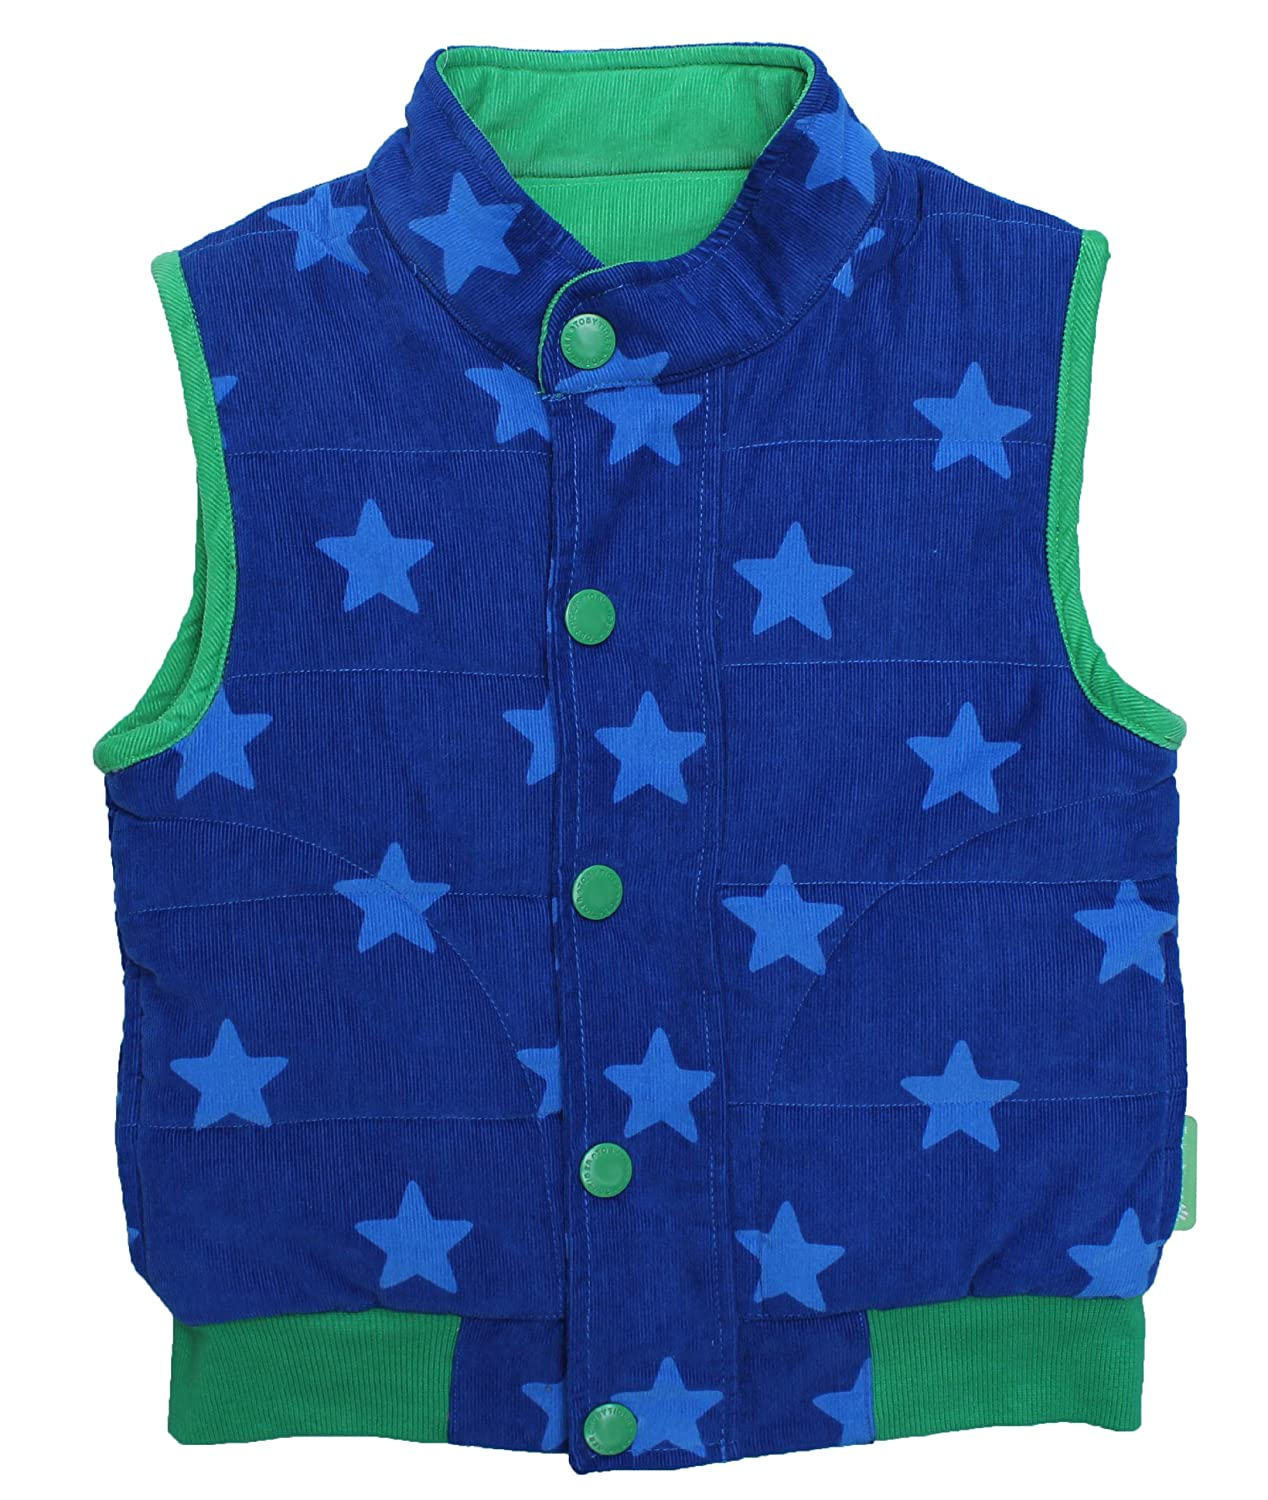 Toby Tiger Cord Blue Star Single Breasted Boy's Gilet Cord Gilet Blue Star